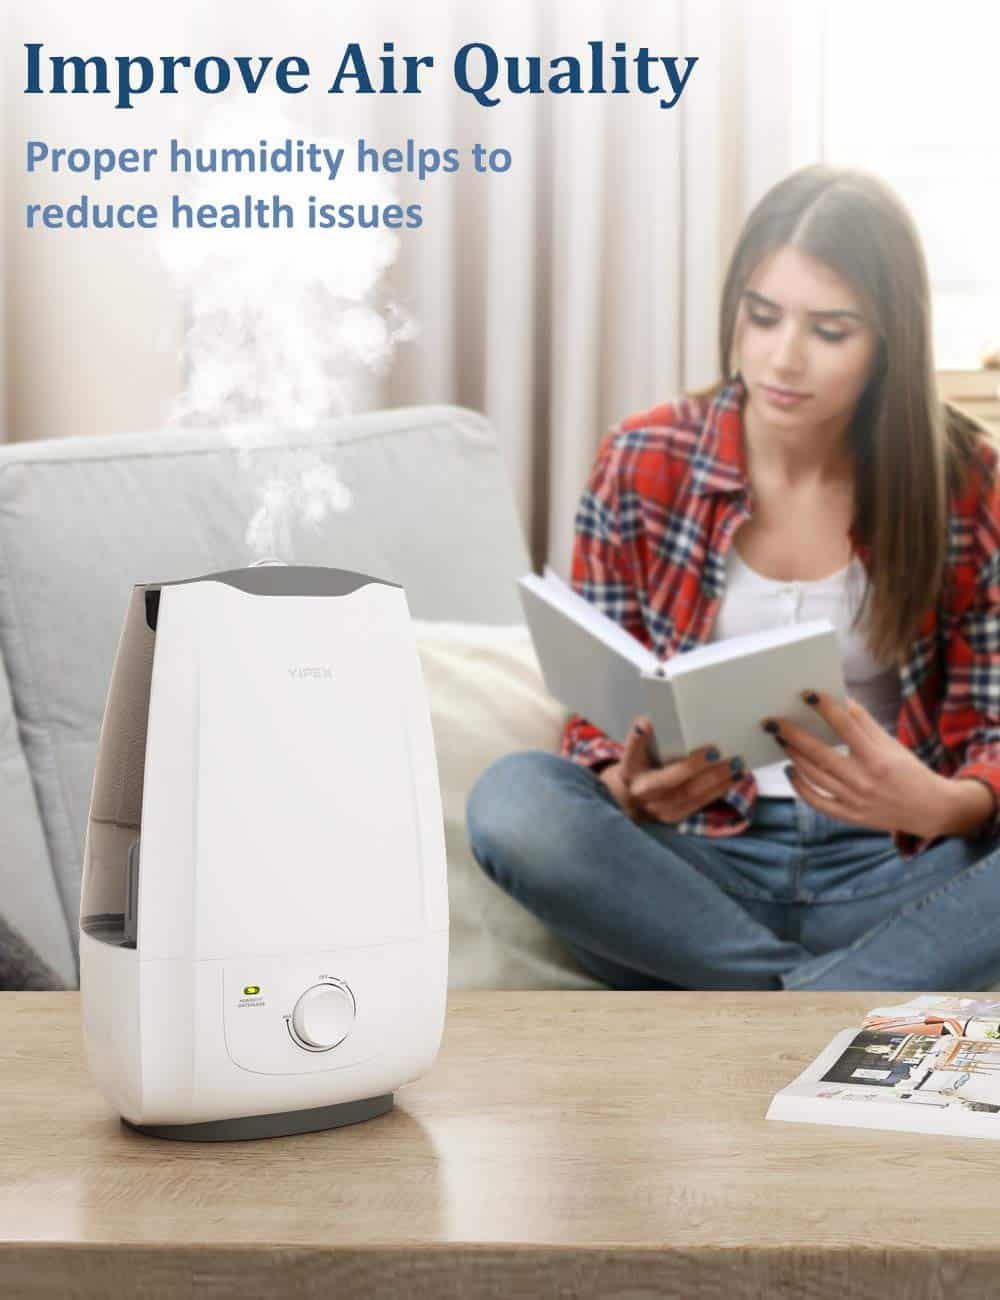 VIPEX Cool Mist Ultrasonic Humidifier Review